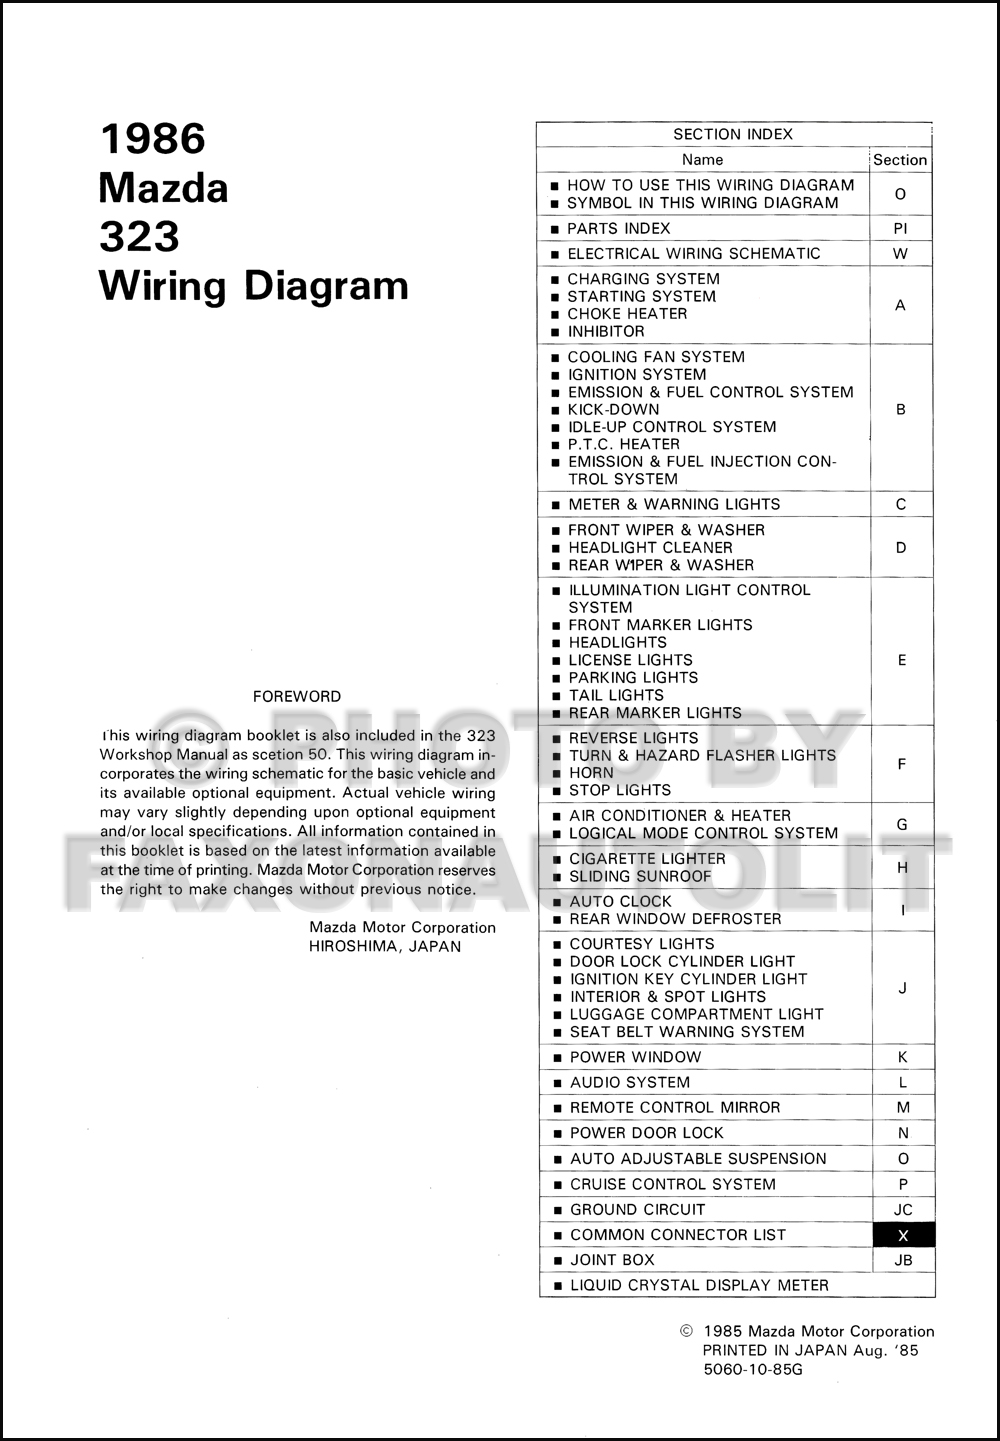 1986 Mazda 323 Wiring Diagram Manual Original. click on thumbnail to zoom